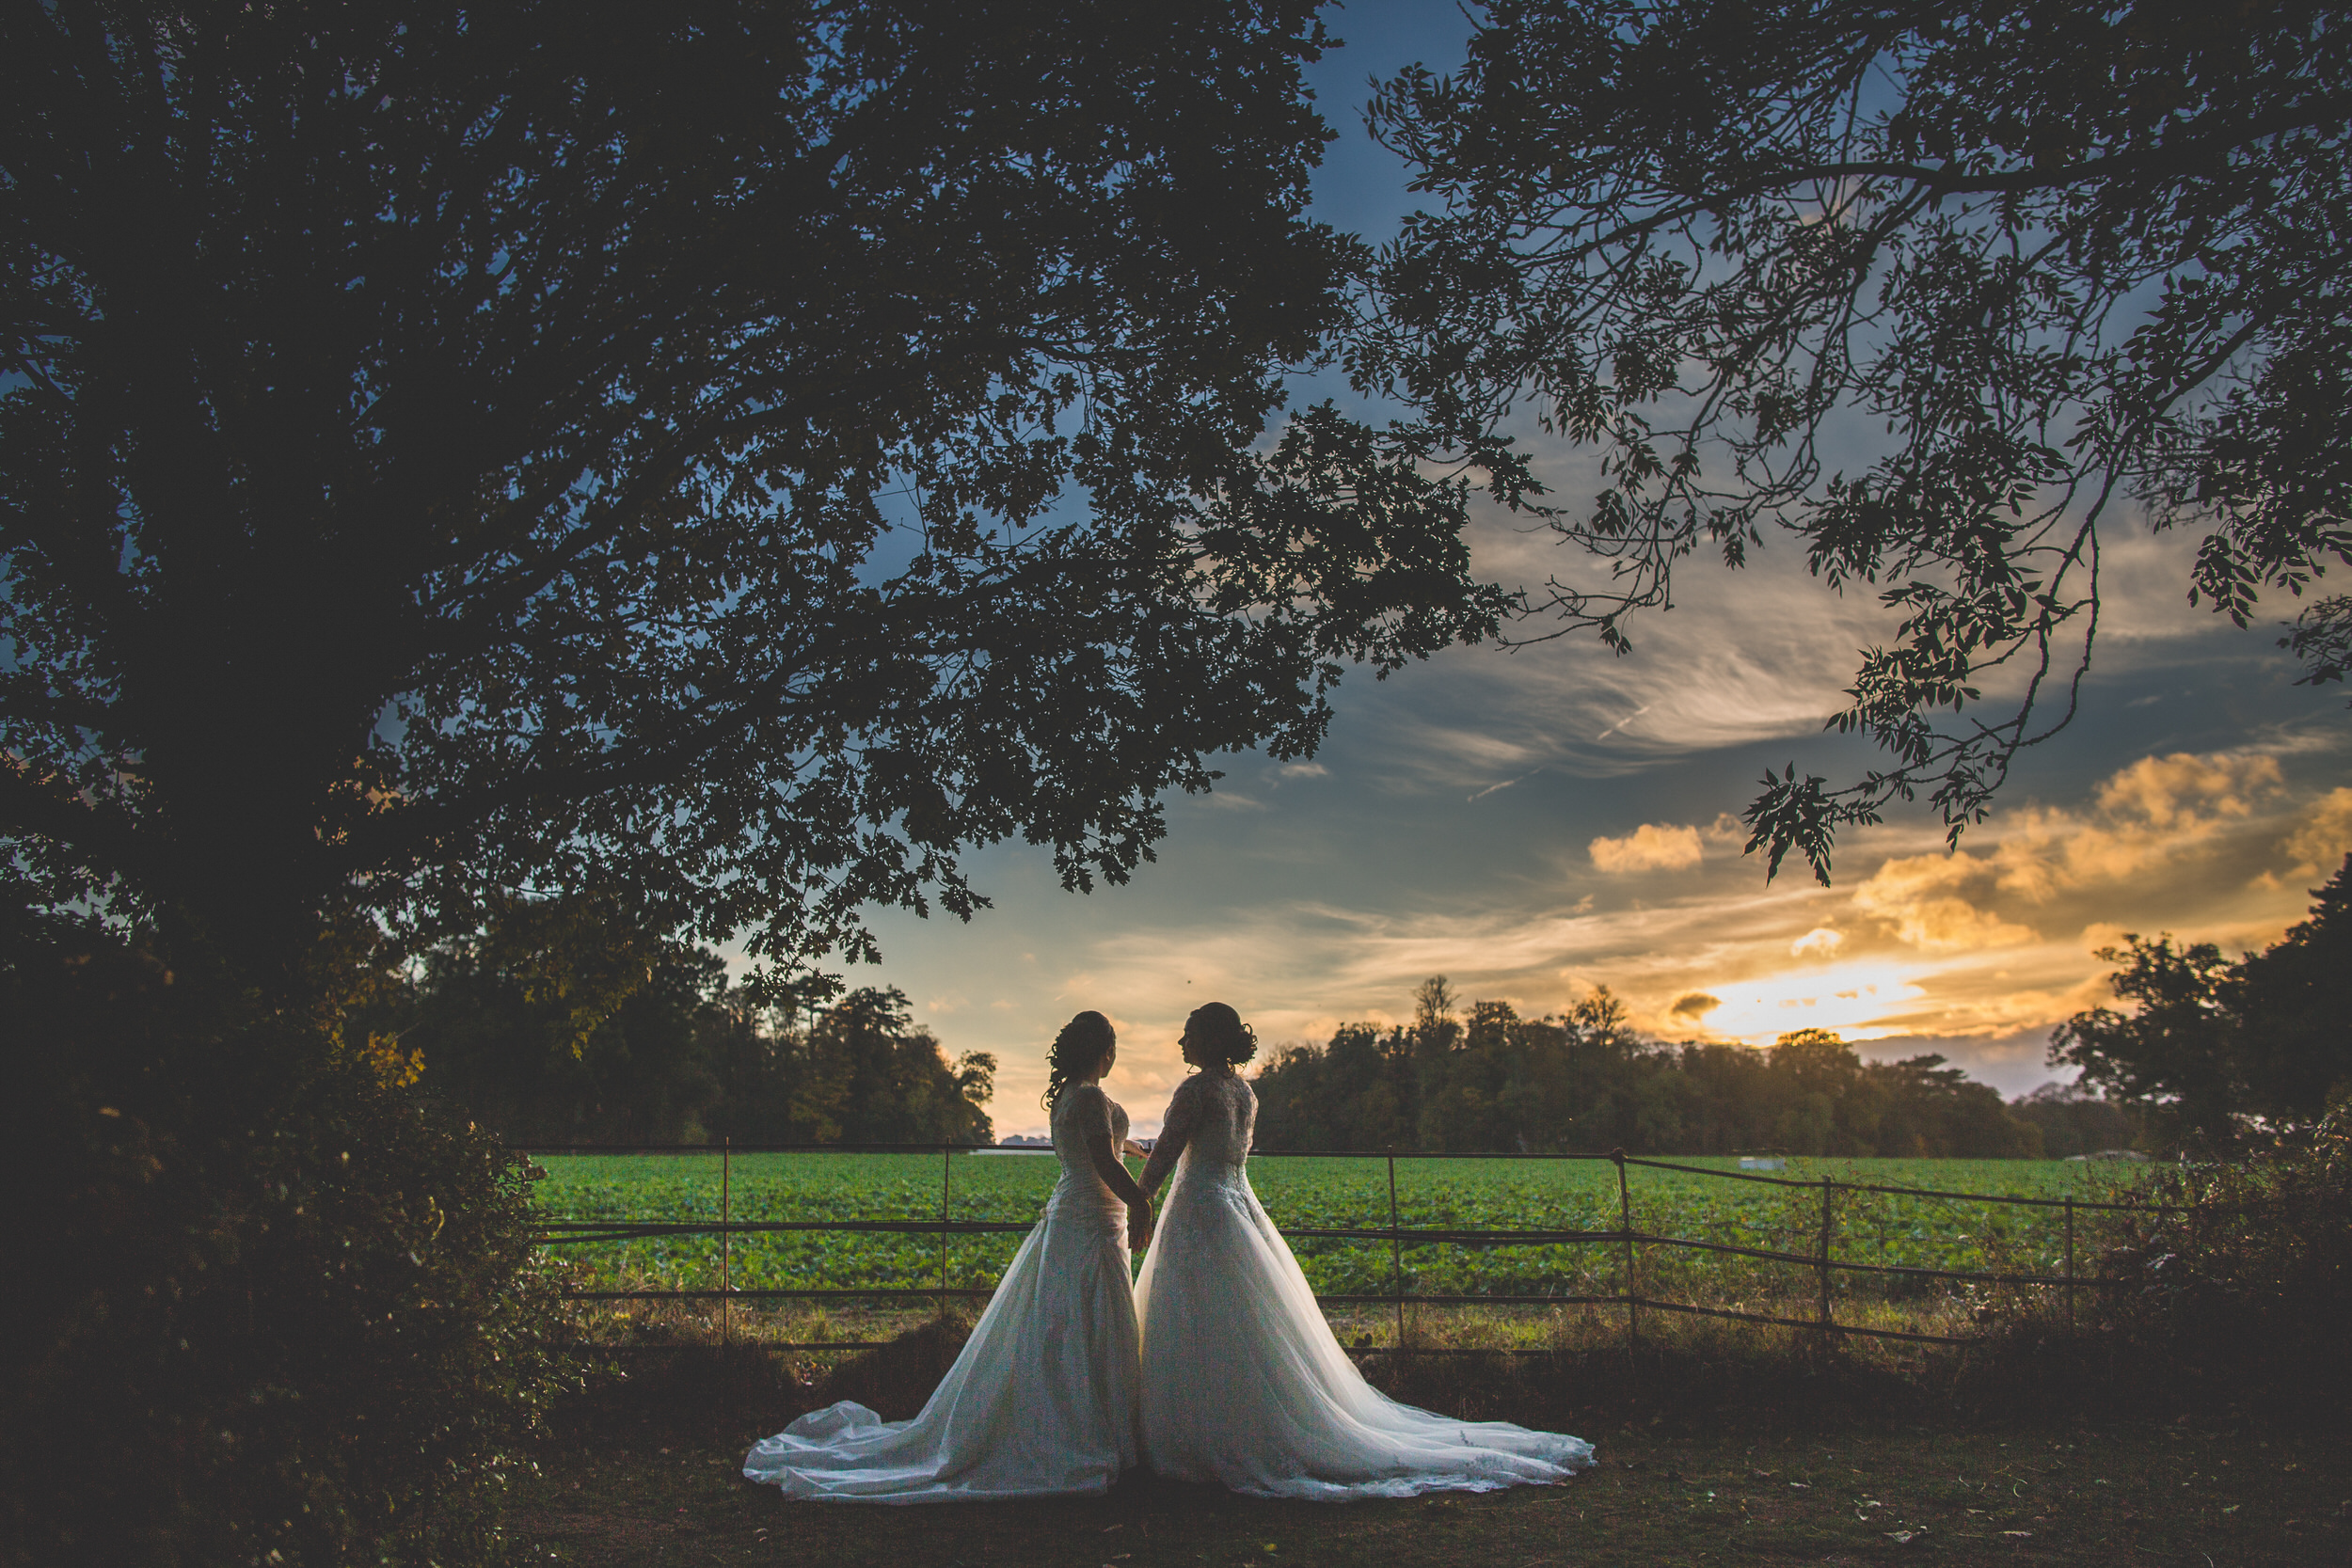 two brides getting married with the sunset